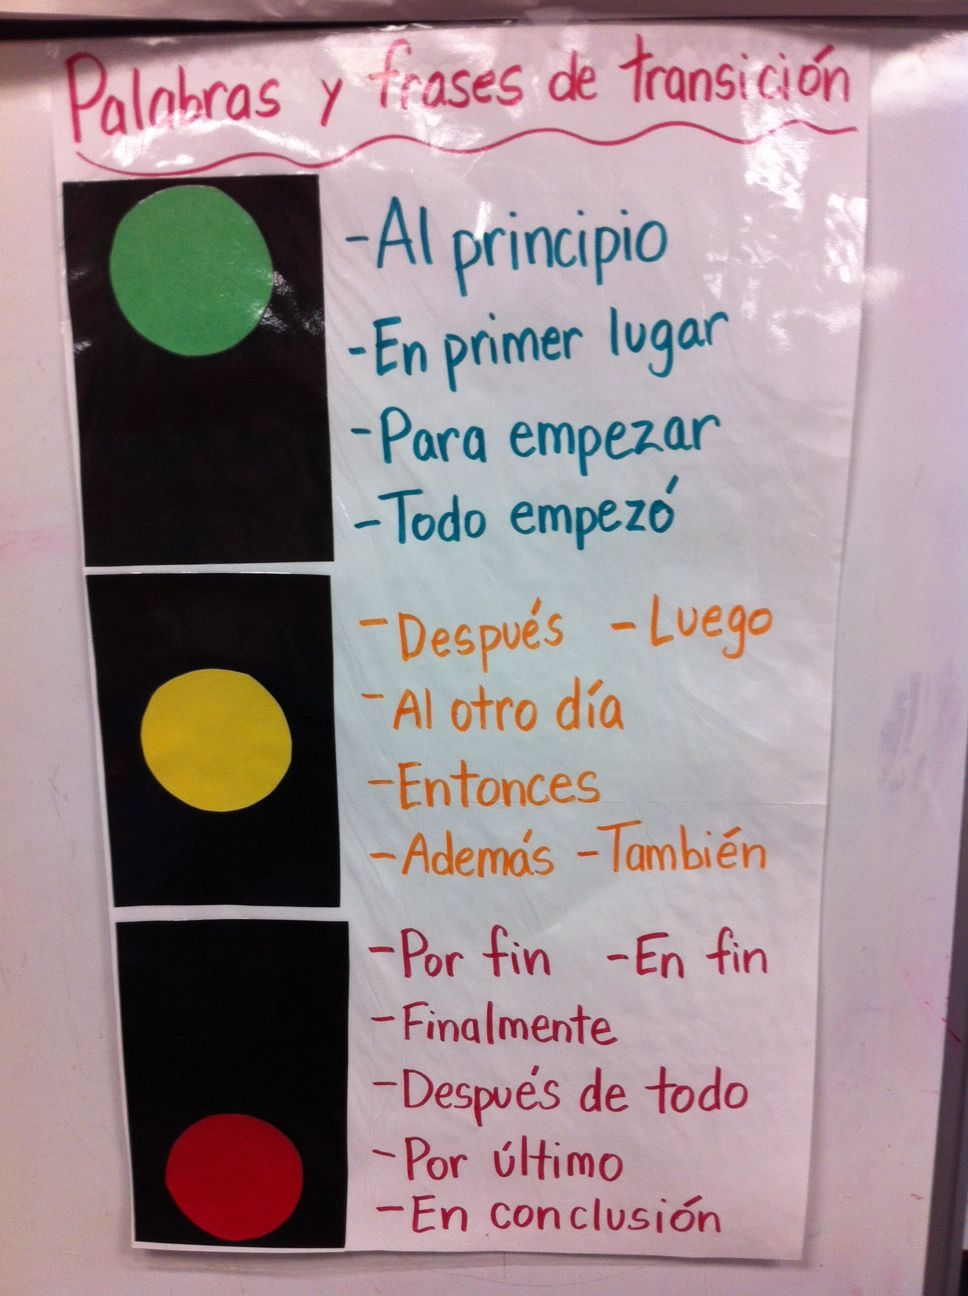 Anchor chart for transitional words and phrases in Spanish. Palabras y frases de transición.  More phrases to add to the anchor chart.  It might be a good idea to make this mini and to glue it in each student's writing folder for reference.